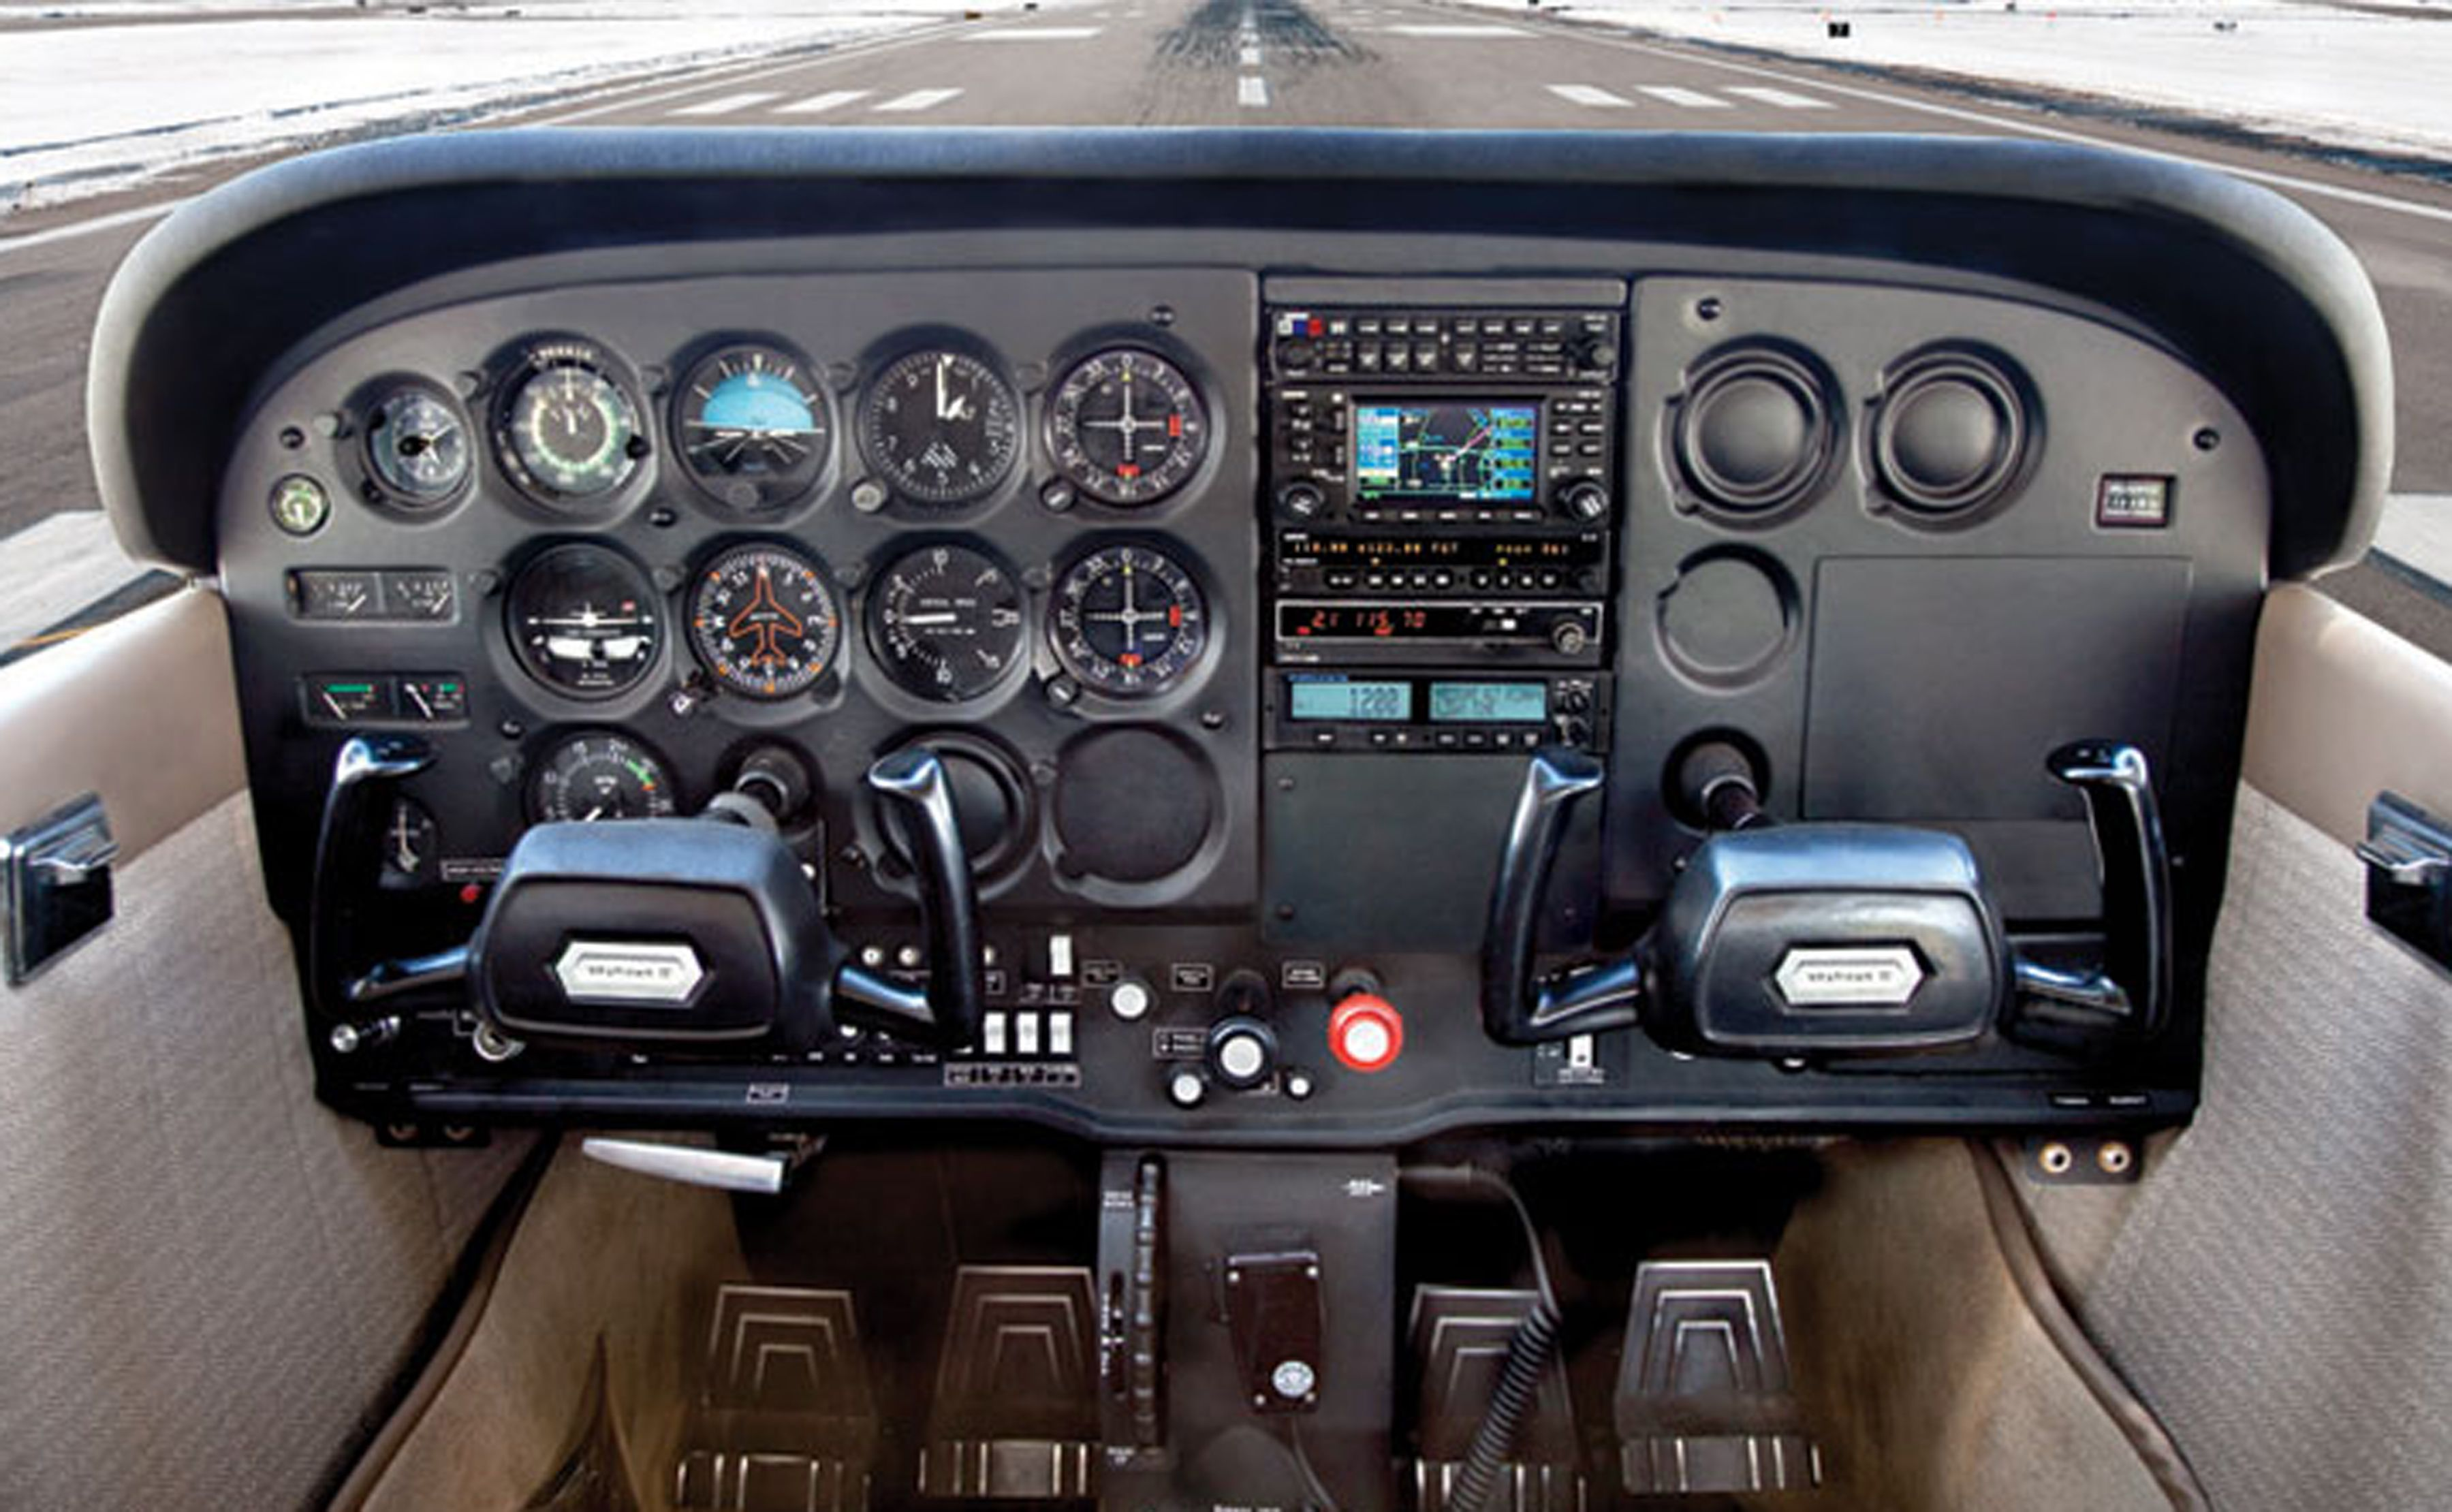 Cessna 172 cockpit | aircrafts | Cessna 172, Flight